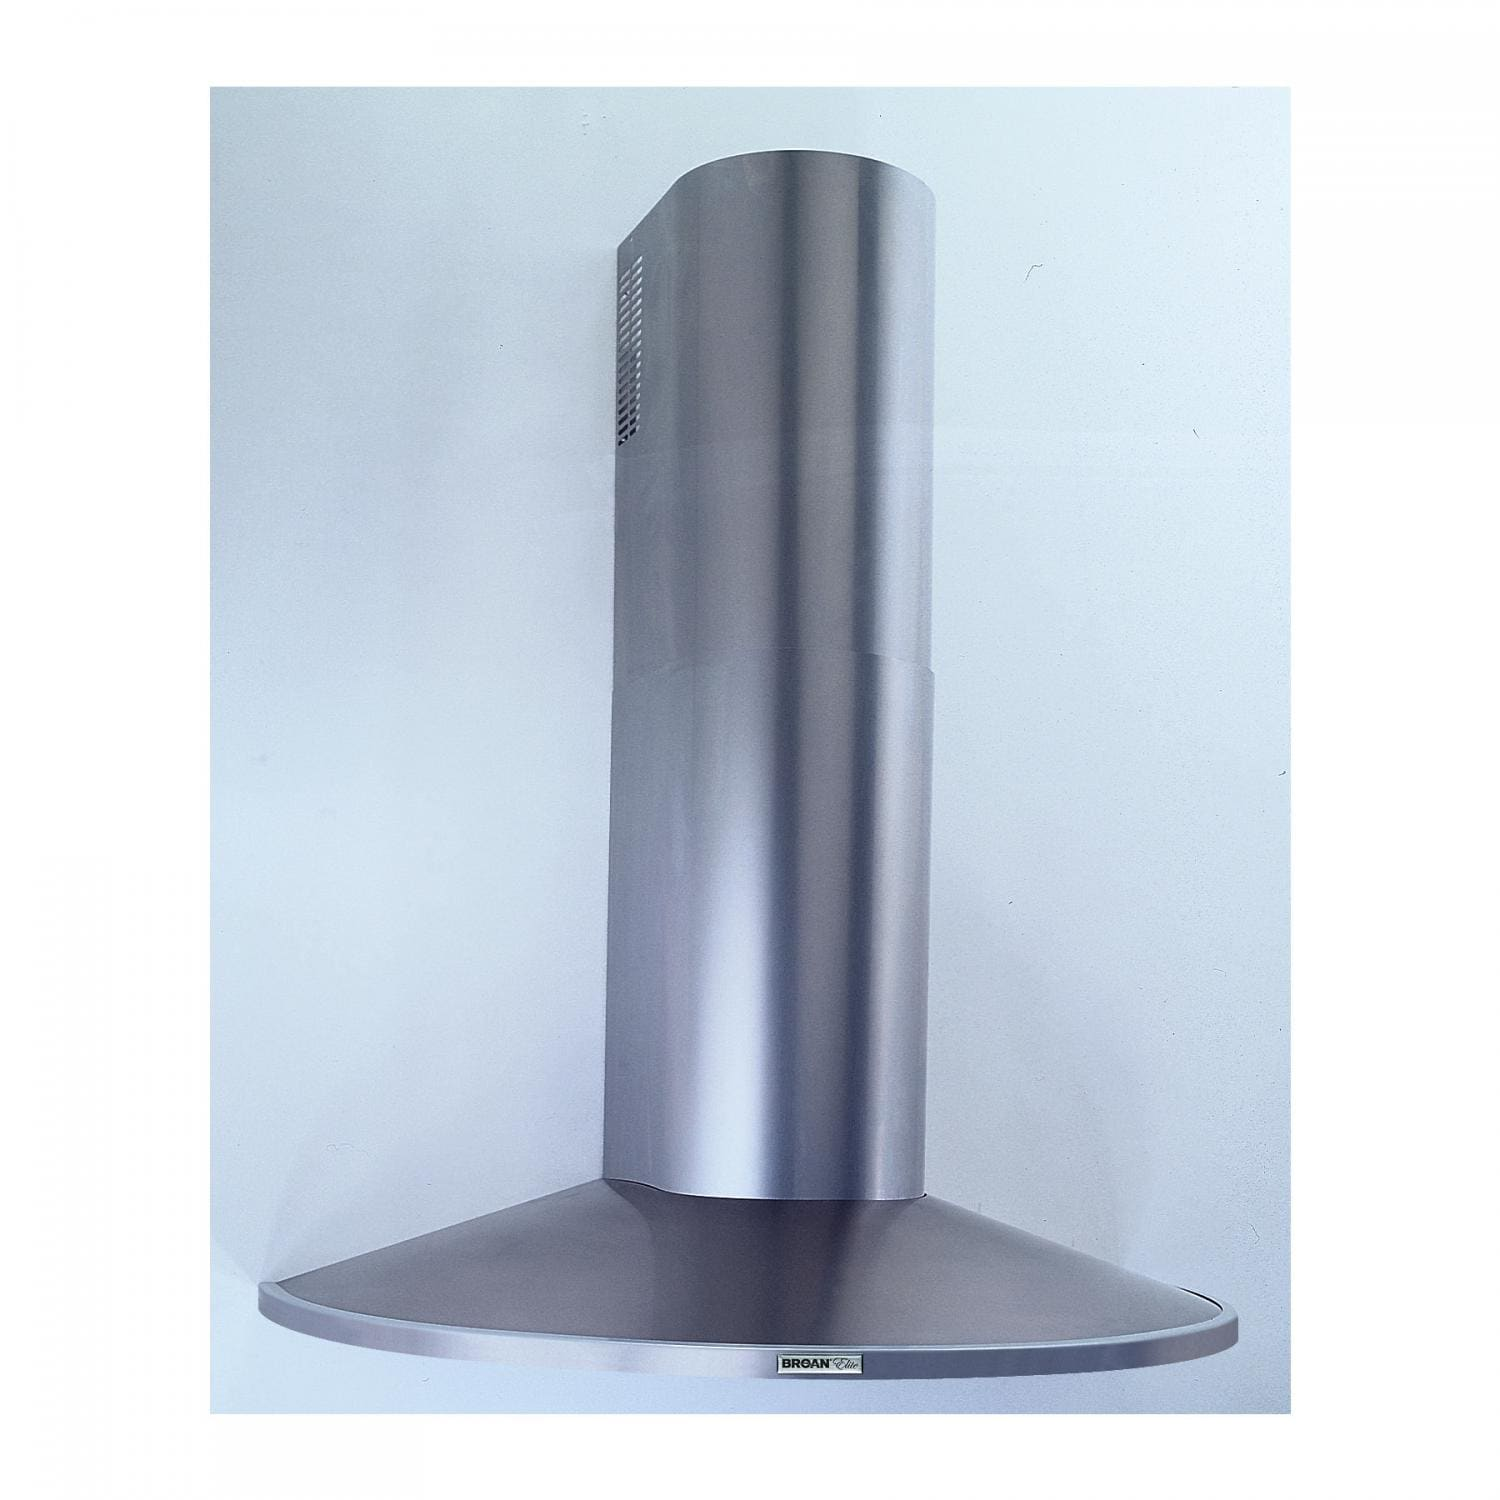 Broan 36-Inch 370 CFM Chimney Style Range Hood - Stainless Steel - RM519004